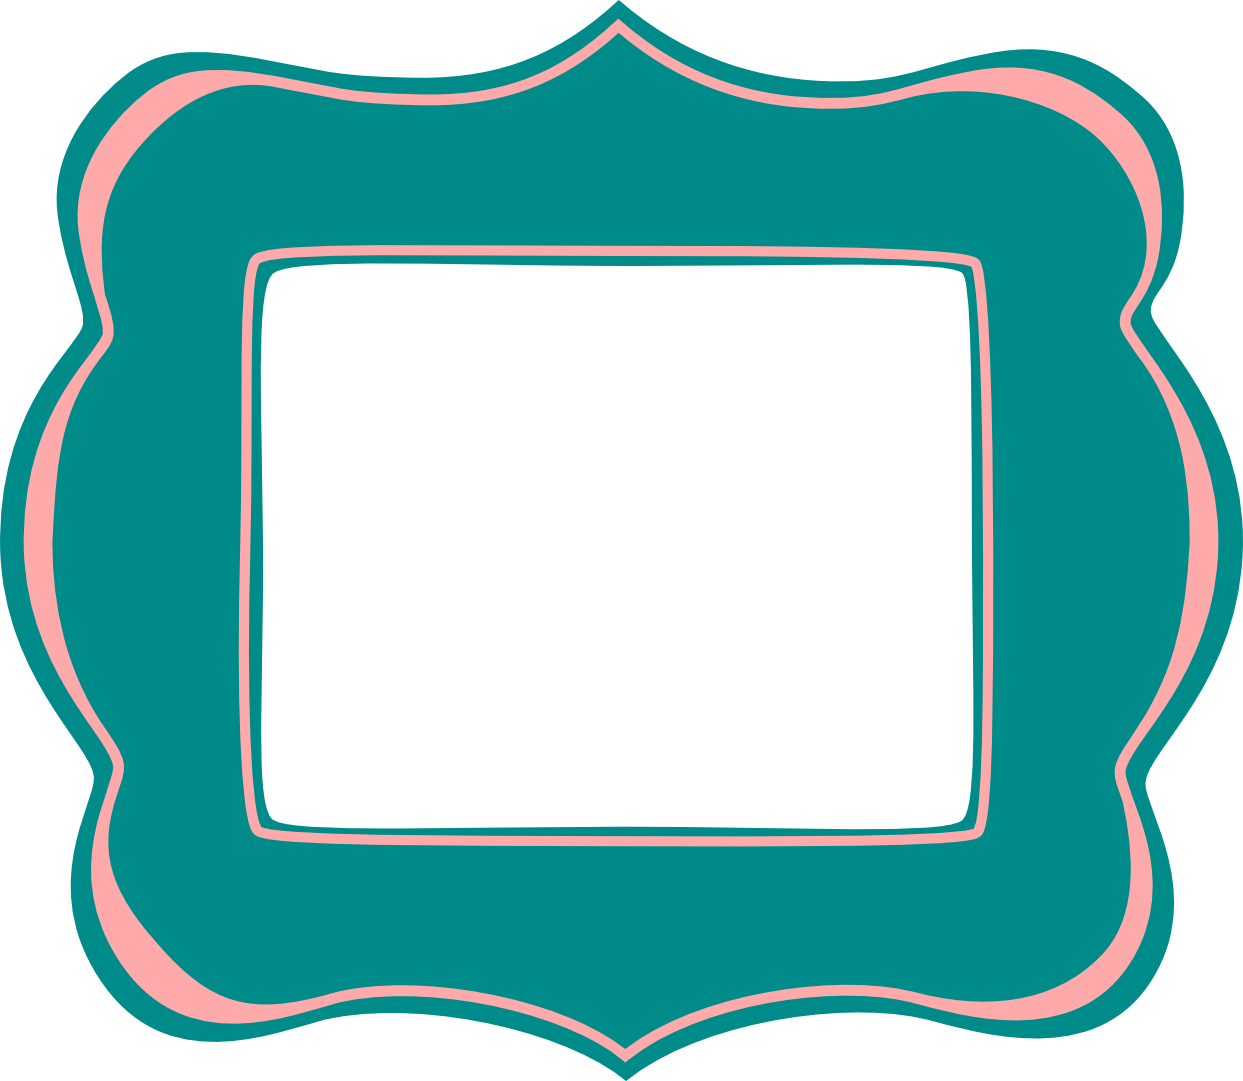 Free vector scrapbook frames. Words clipart journal